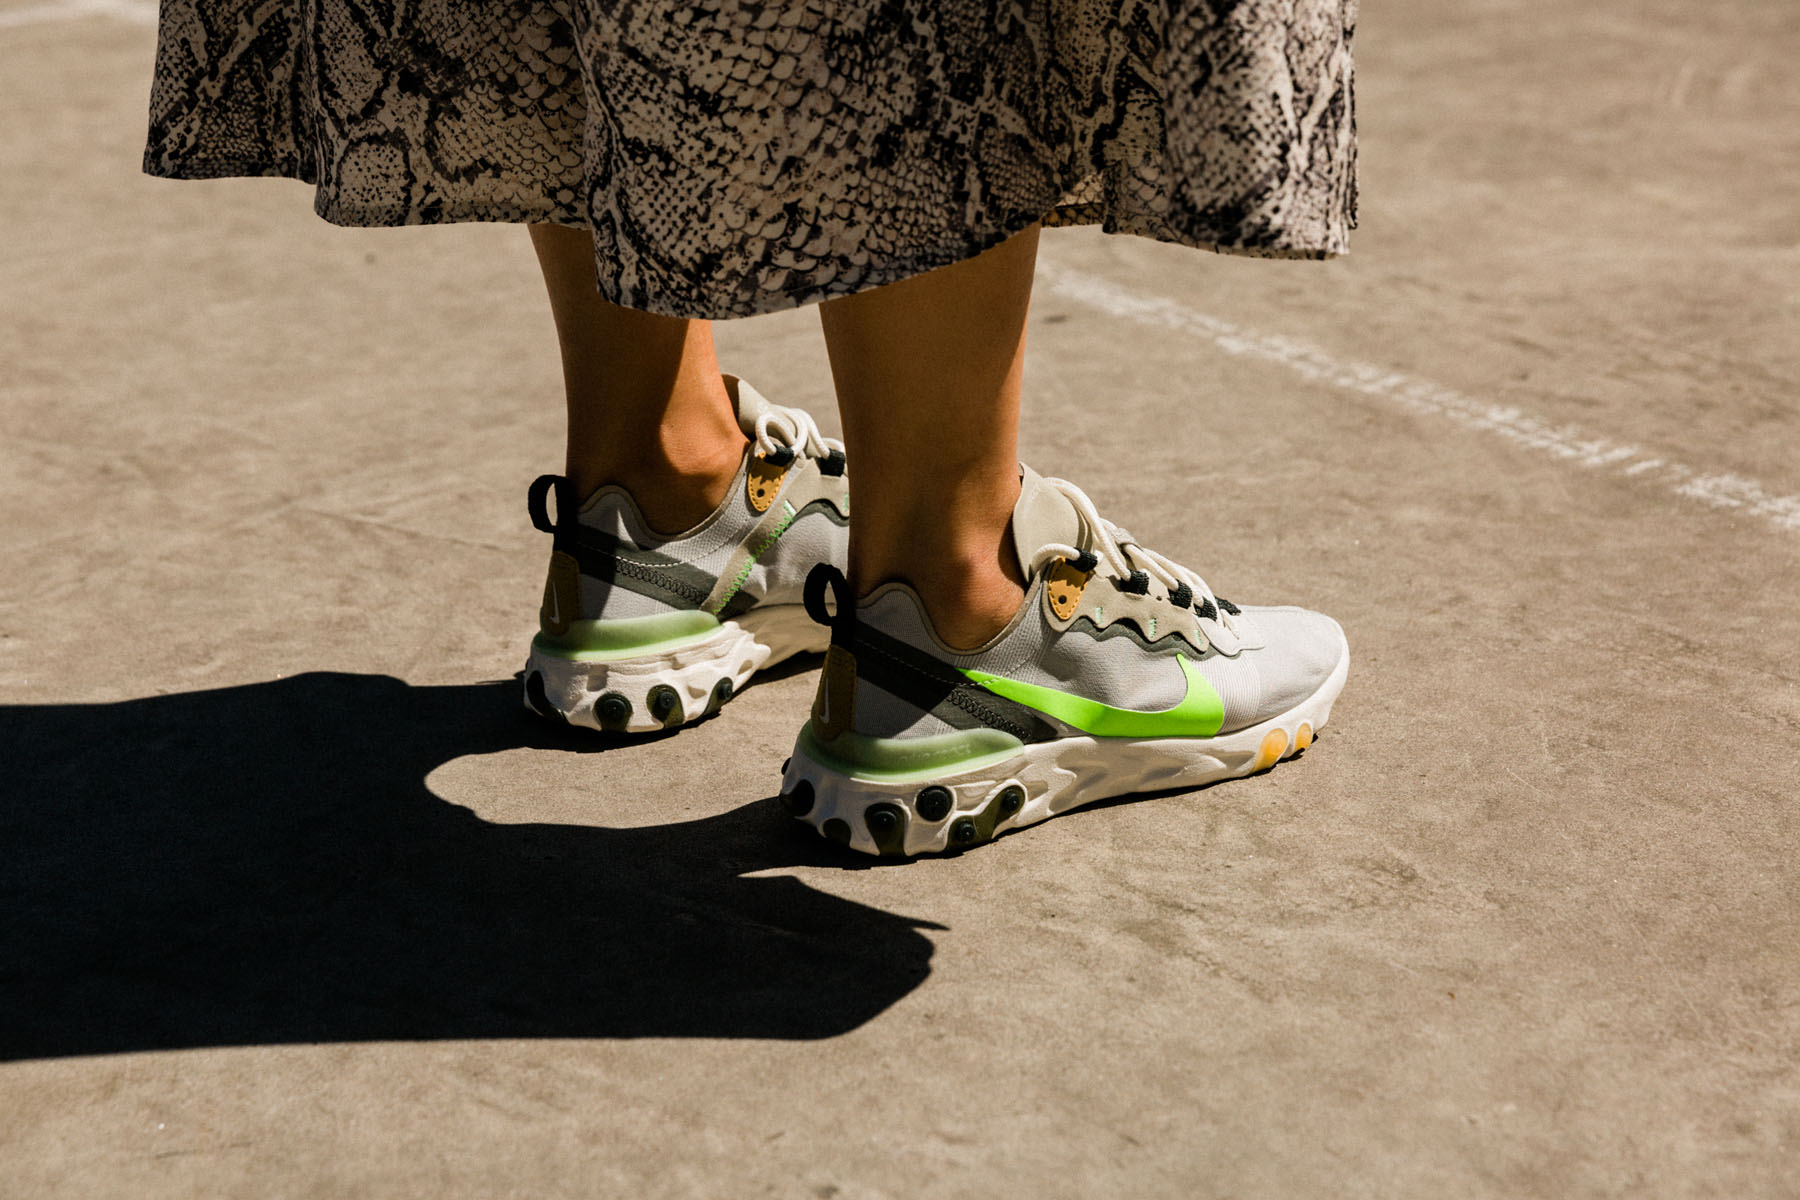 fashion sneakers, Nike React Element 55 sneakers, Nike React Element 55, dress with sneakers, snakeskin dress and sneakers // Notjessfashion.com